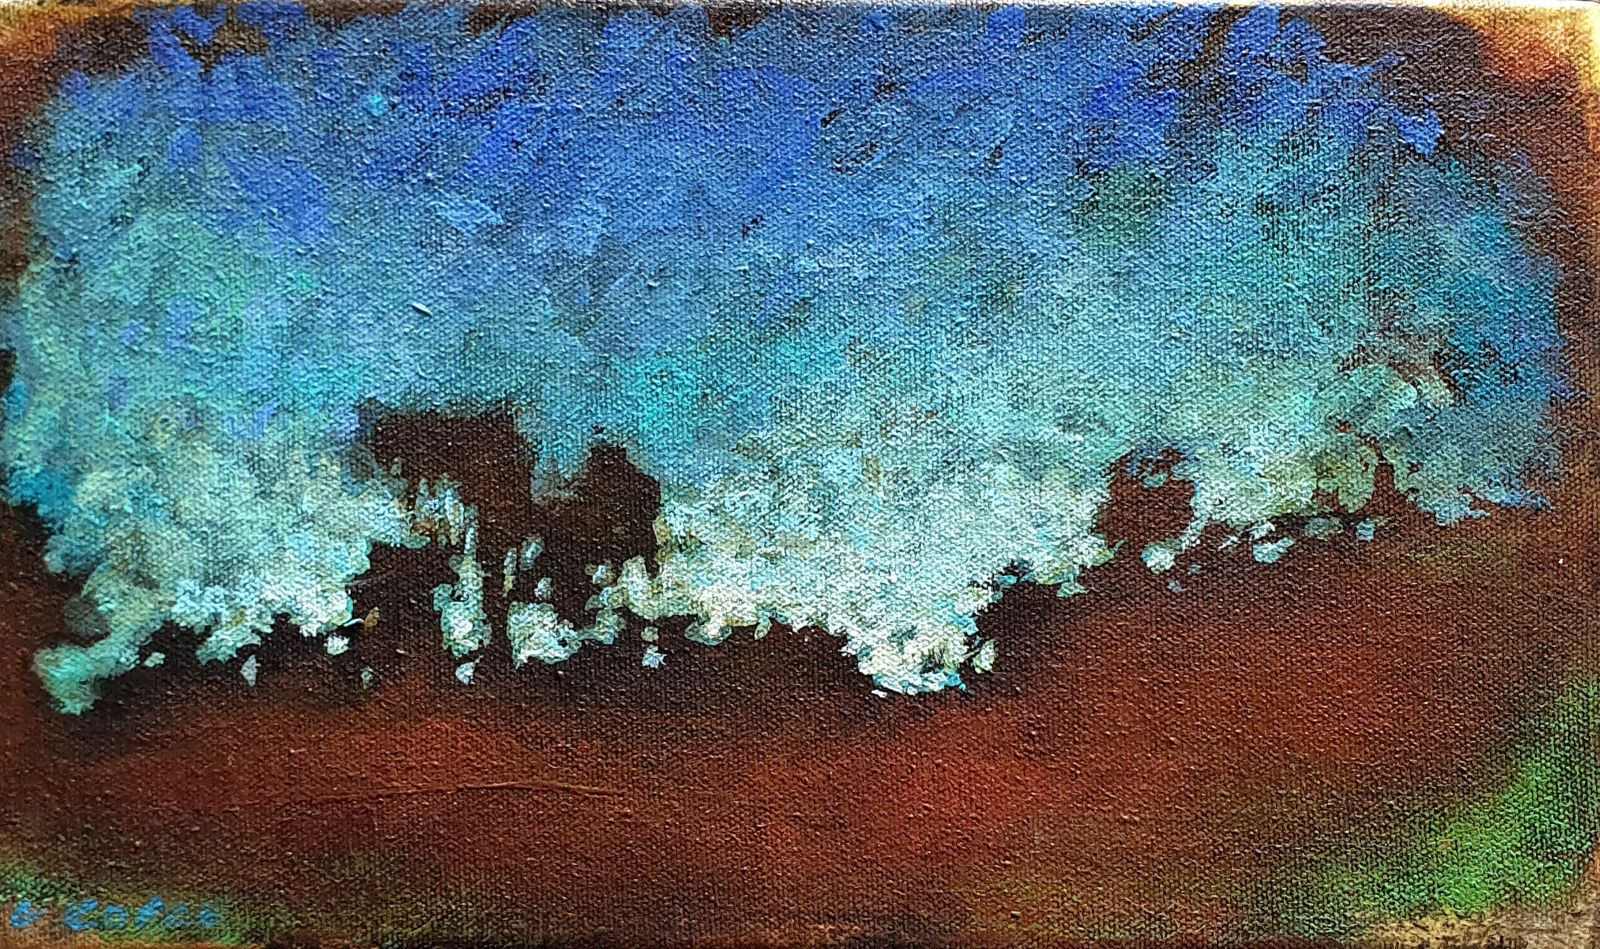 The_essence_15_x_25_x_4cm_Acrylic_on_canvas